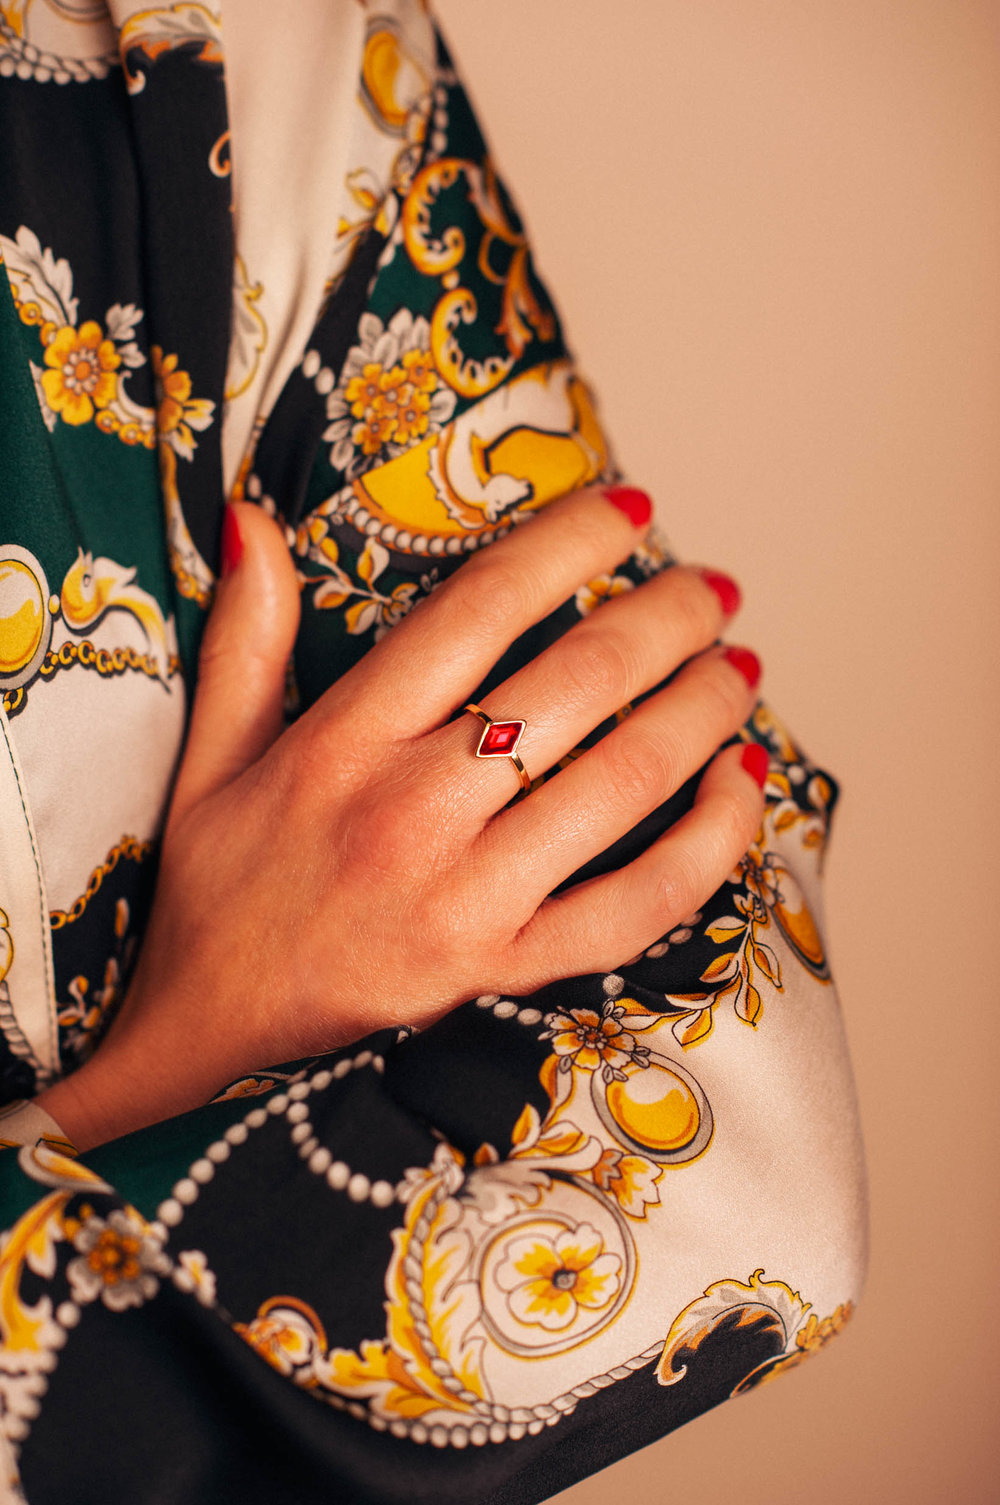 Lookbook_lestatillonnes_0019_Cindy_bague_rouge.jpg